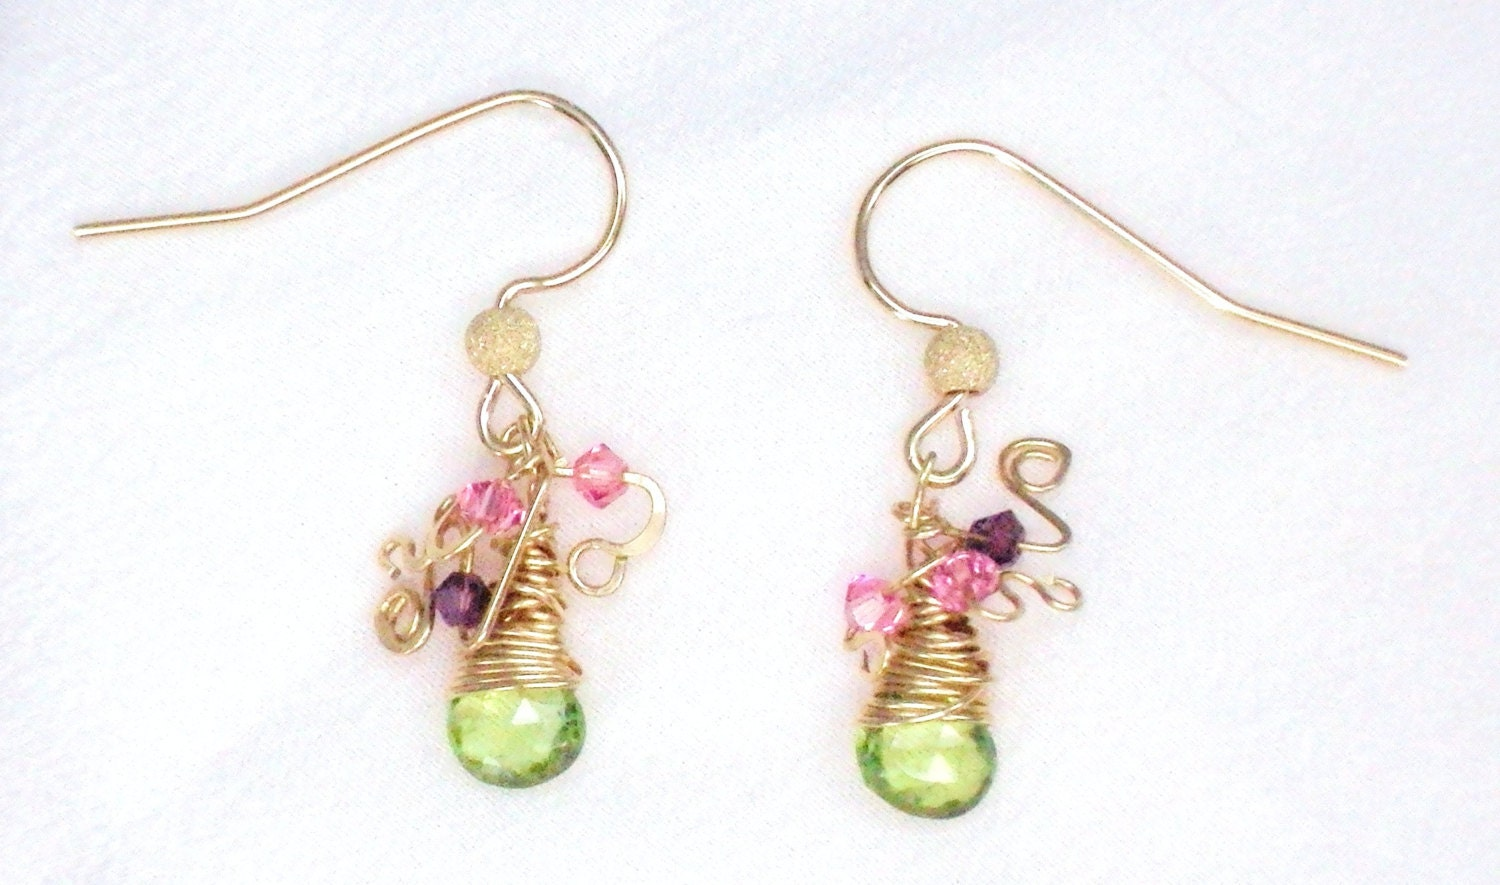 Dangle earrings with apple green peridot  flat briolettes and Swarovski crystals - Sweet Pea - VenetianMemories